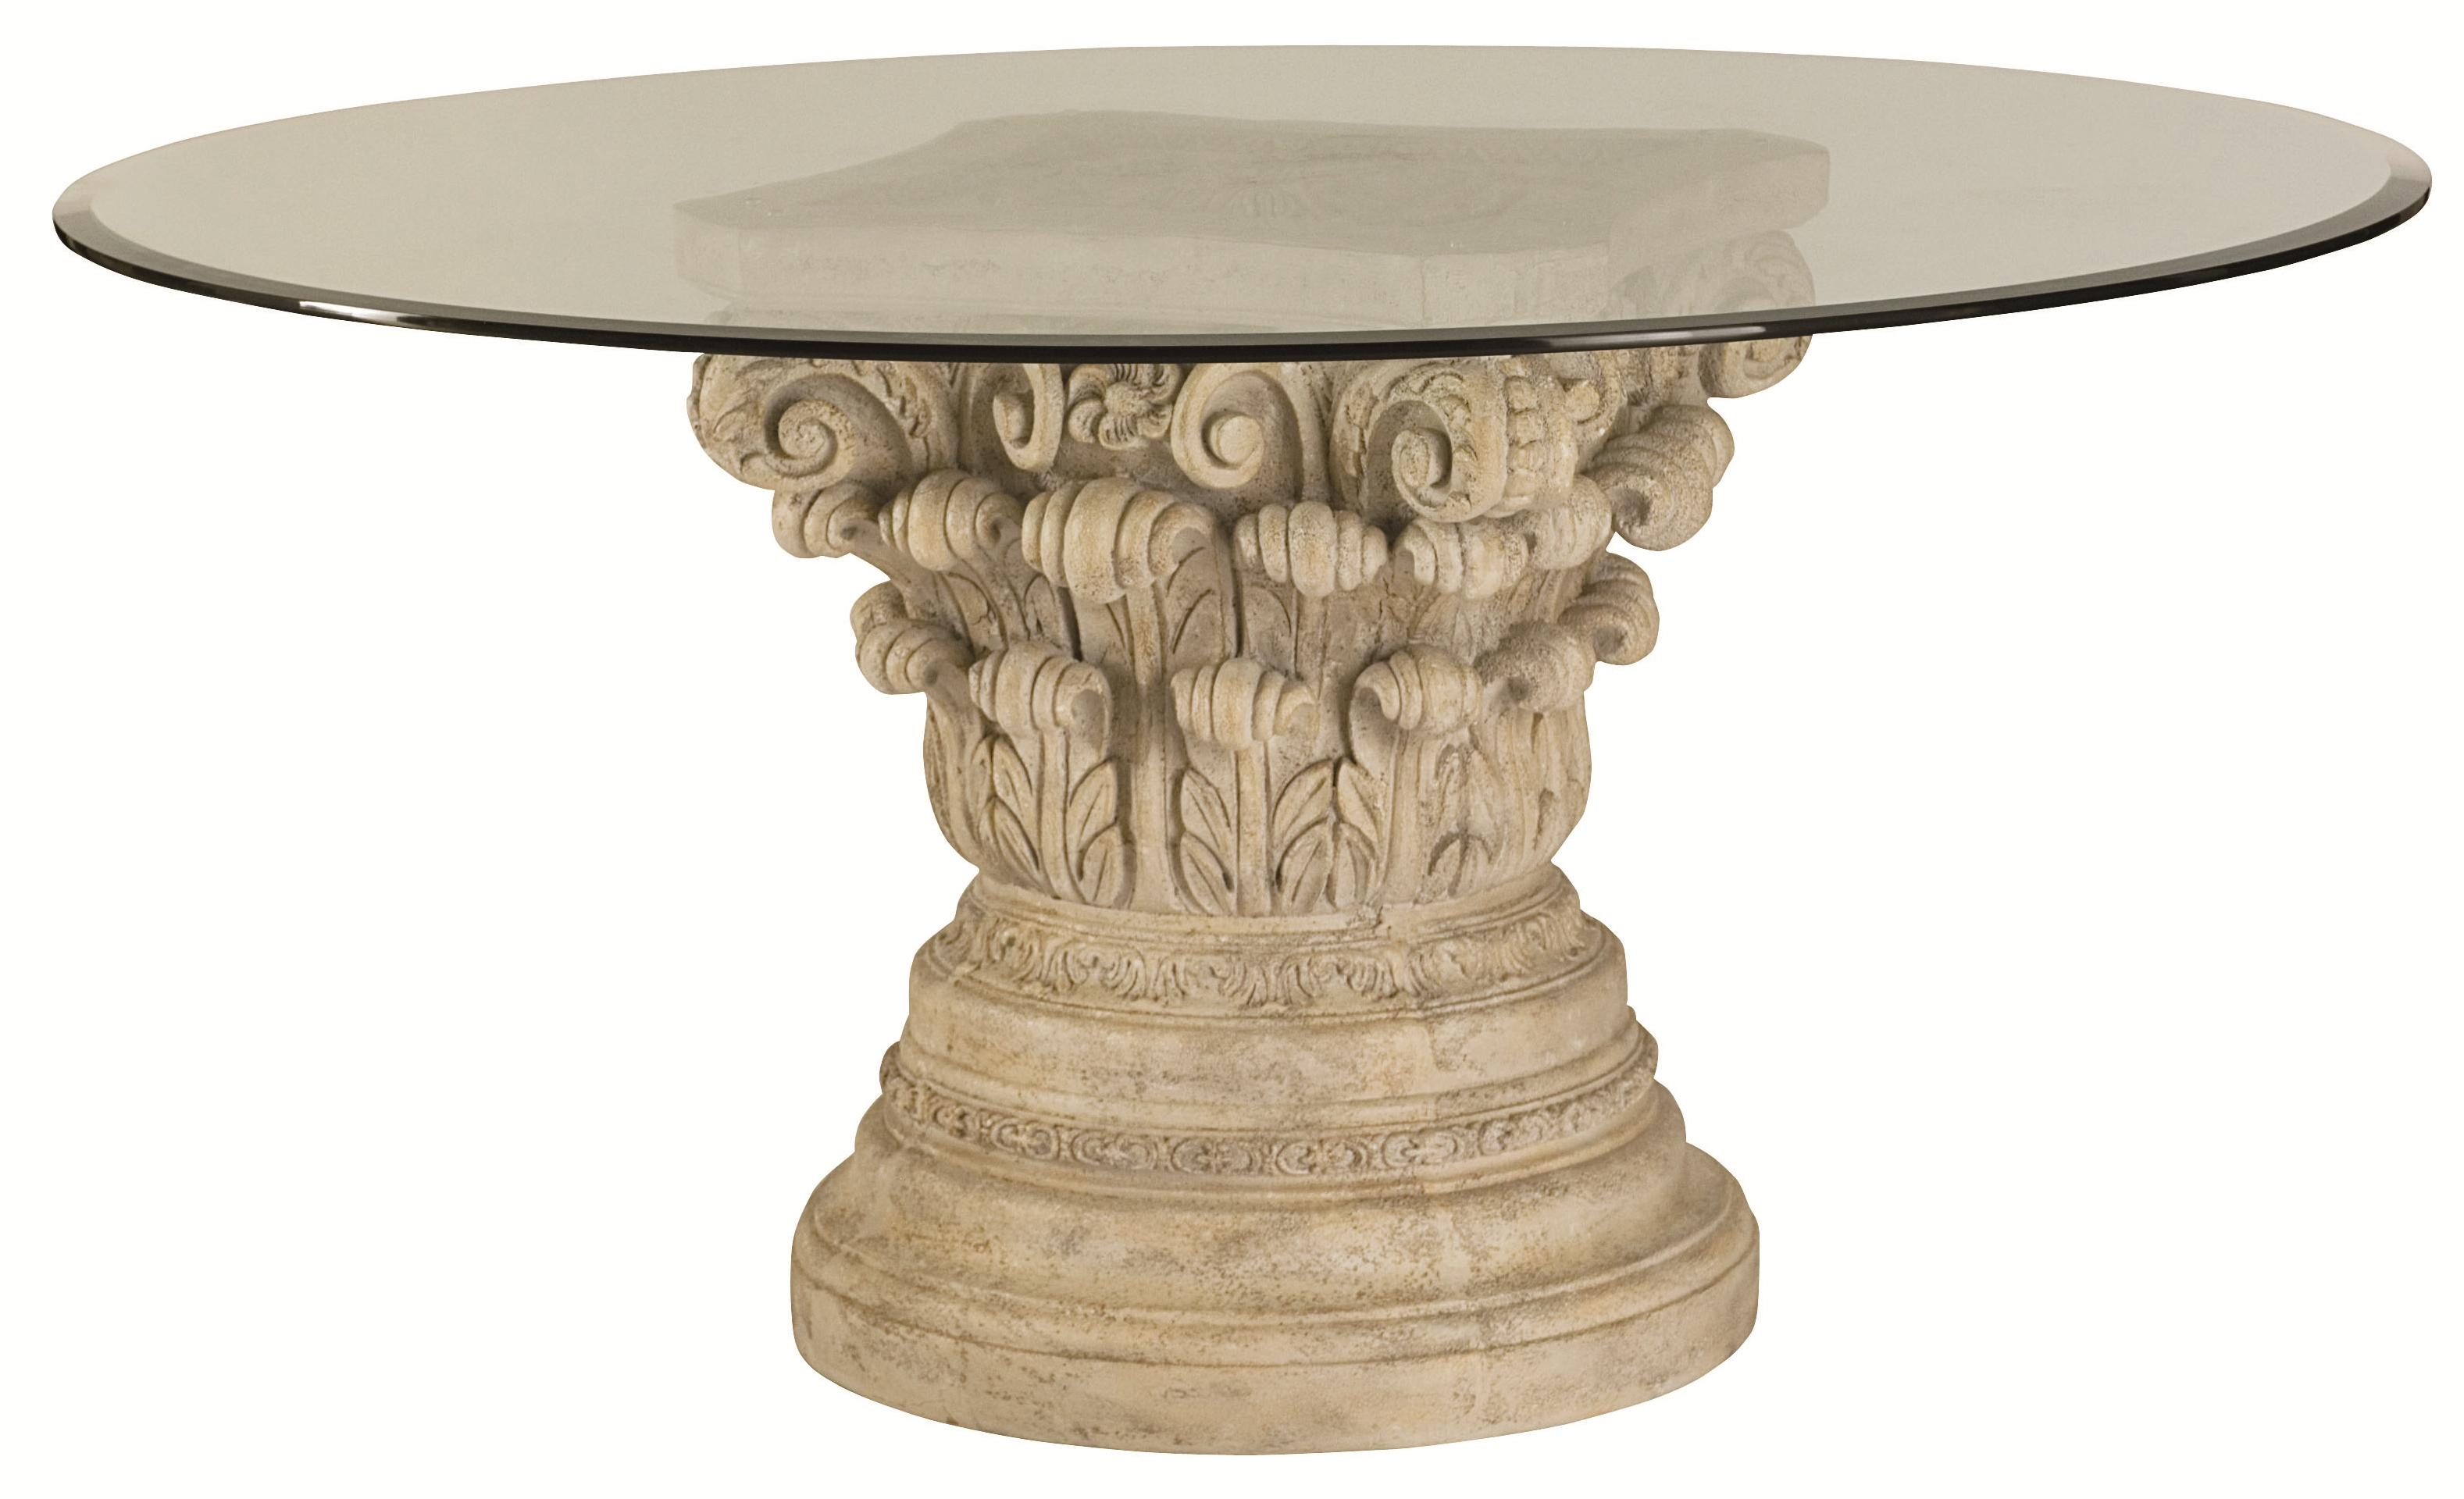 American Drew Jessica McClintock Home - The Boutique Collection Glass Top Round Dining Table - Item Number: 217-702R